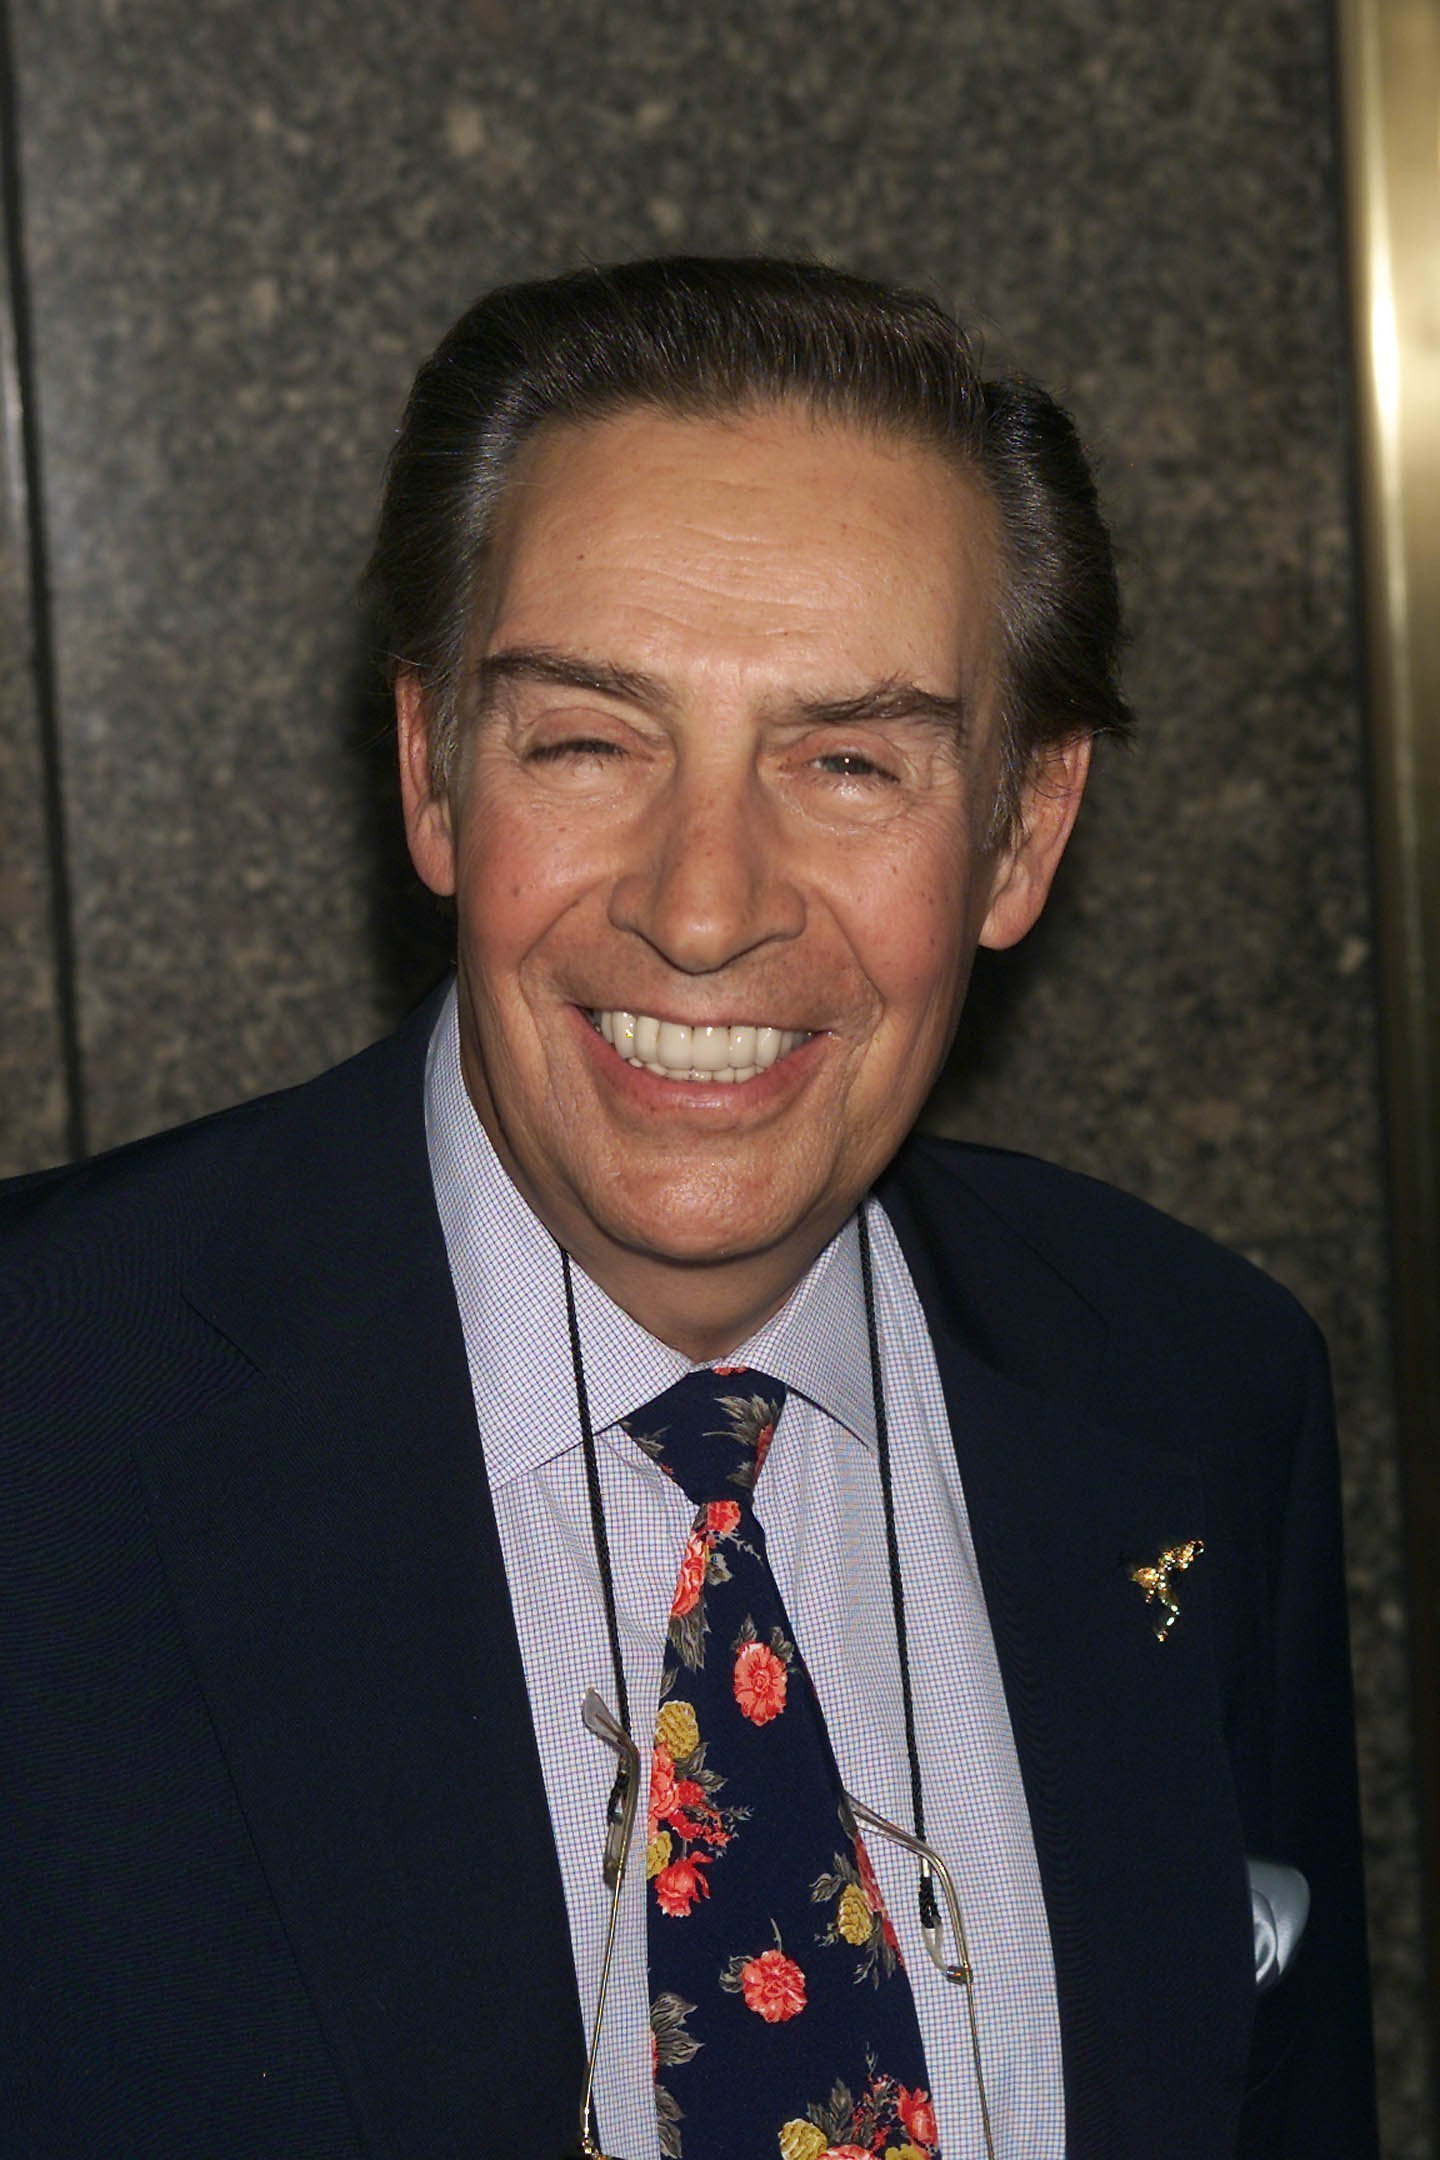 Jerry Orbach arrives at the NBC upfront at Radio City Music Hall in New York City, May 14, 2001 | Photo: GettyImages